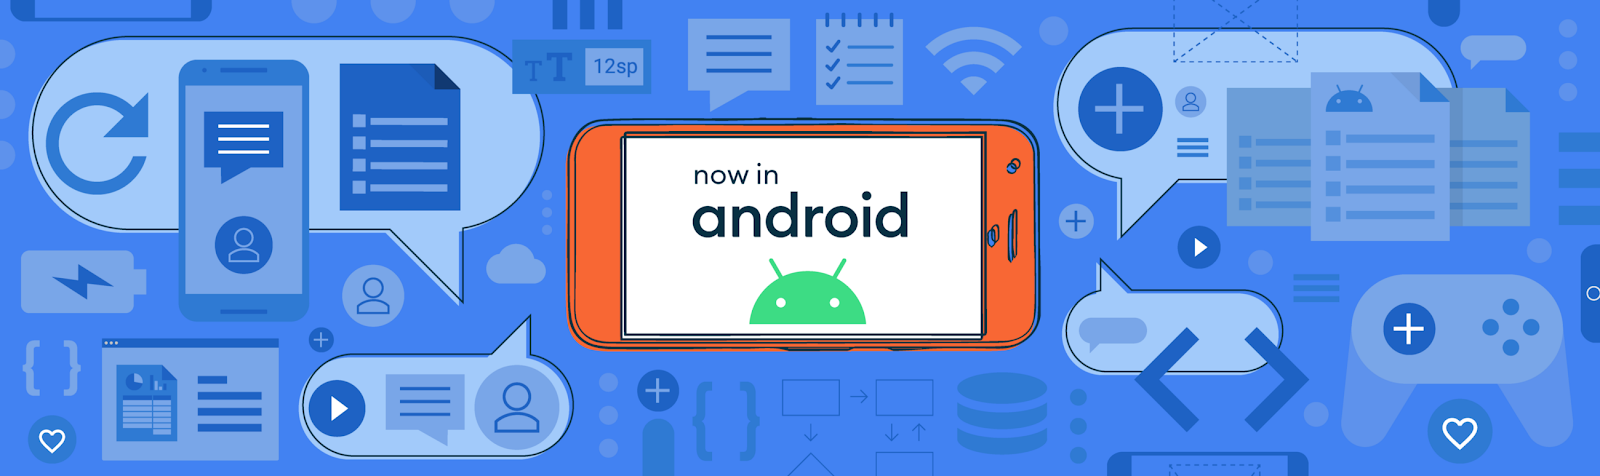 now in android with logo on a mobile device with other imagery